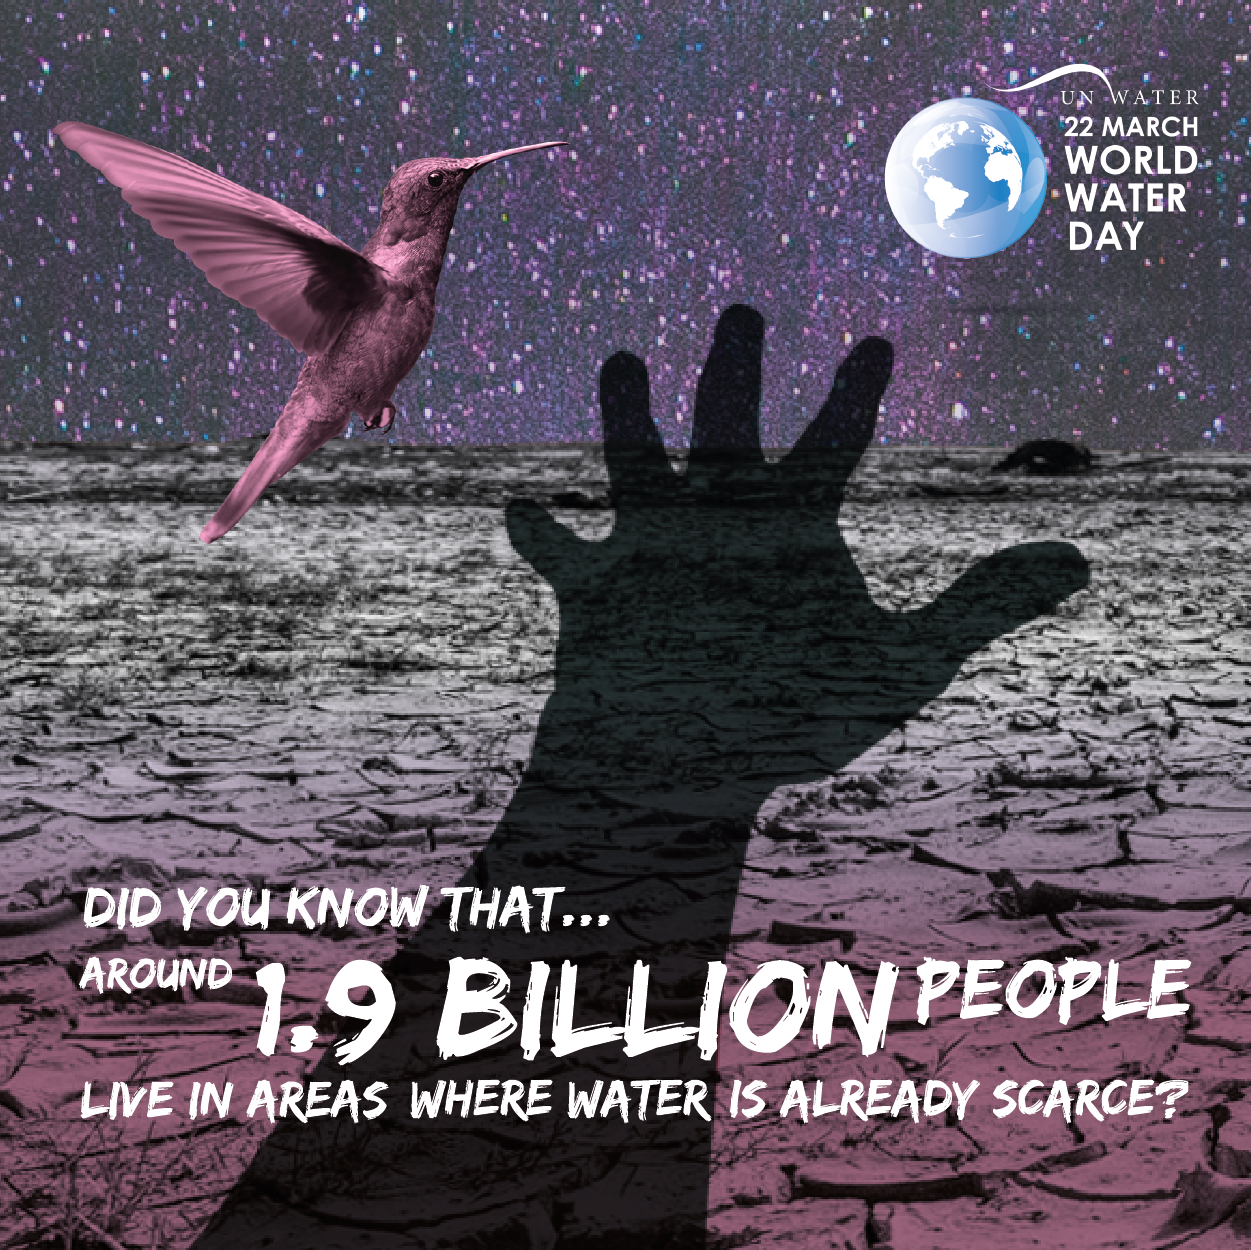 Did you know that around 1.9 billion people live in areas where water is already scarce?